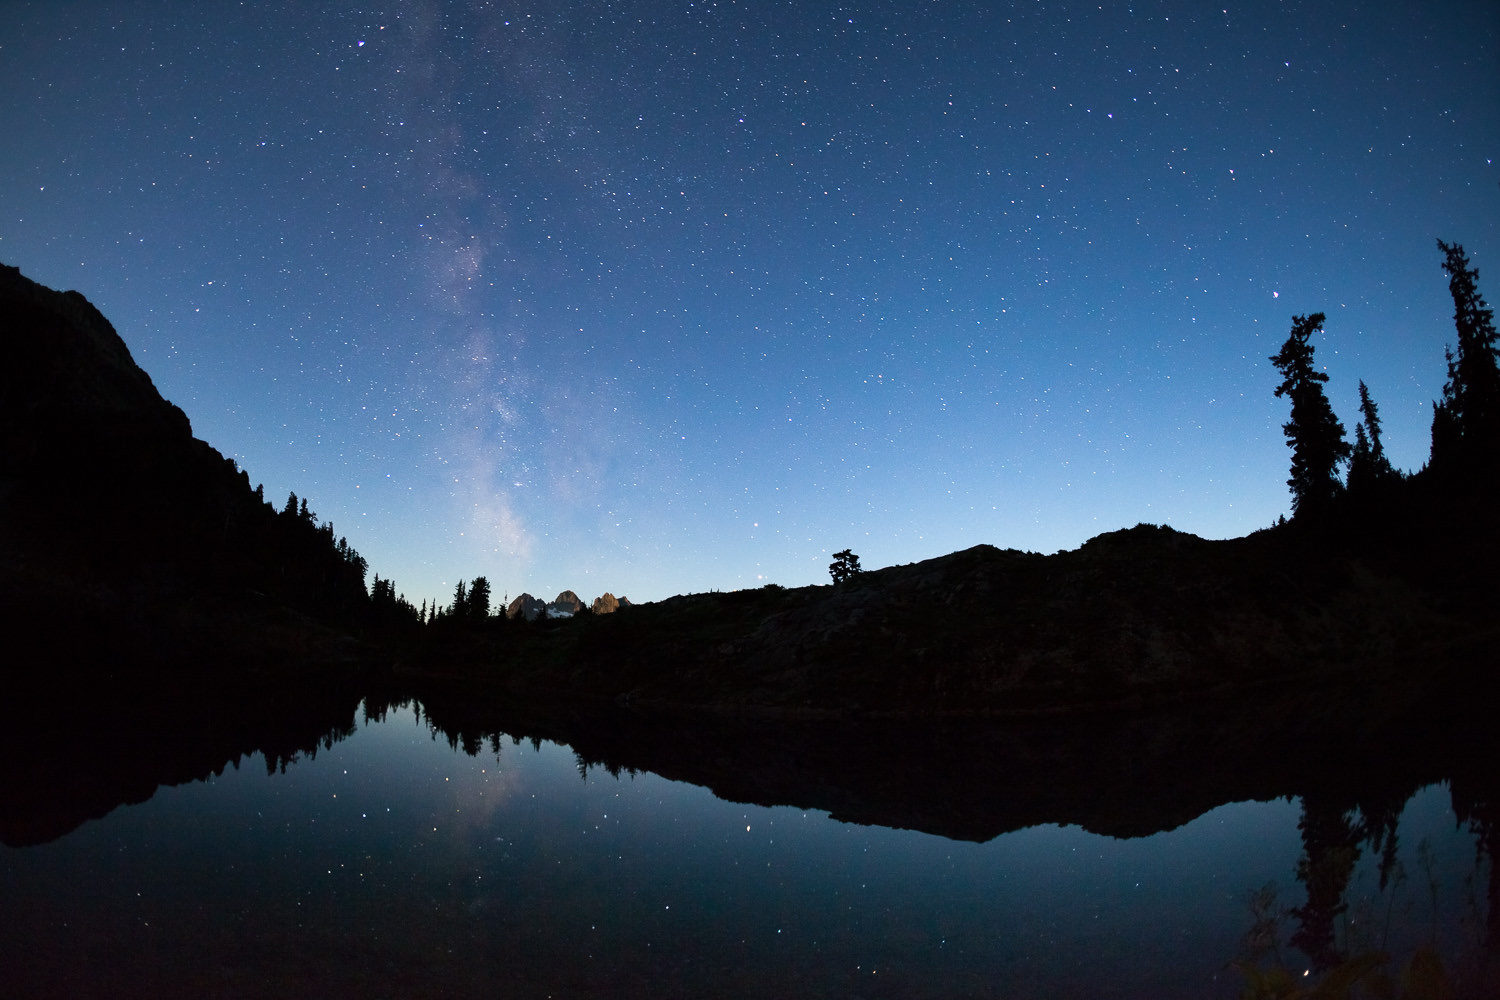 Milky Way over Cobalt Lake with Triple Peak lit in the background by the rising moon.